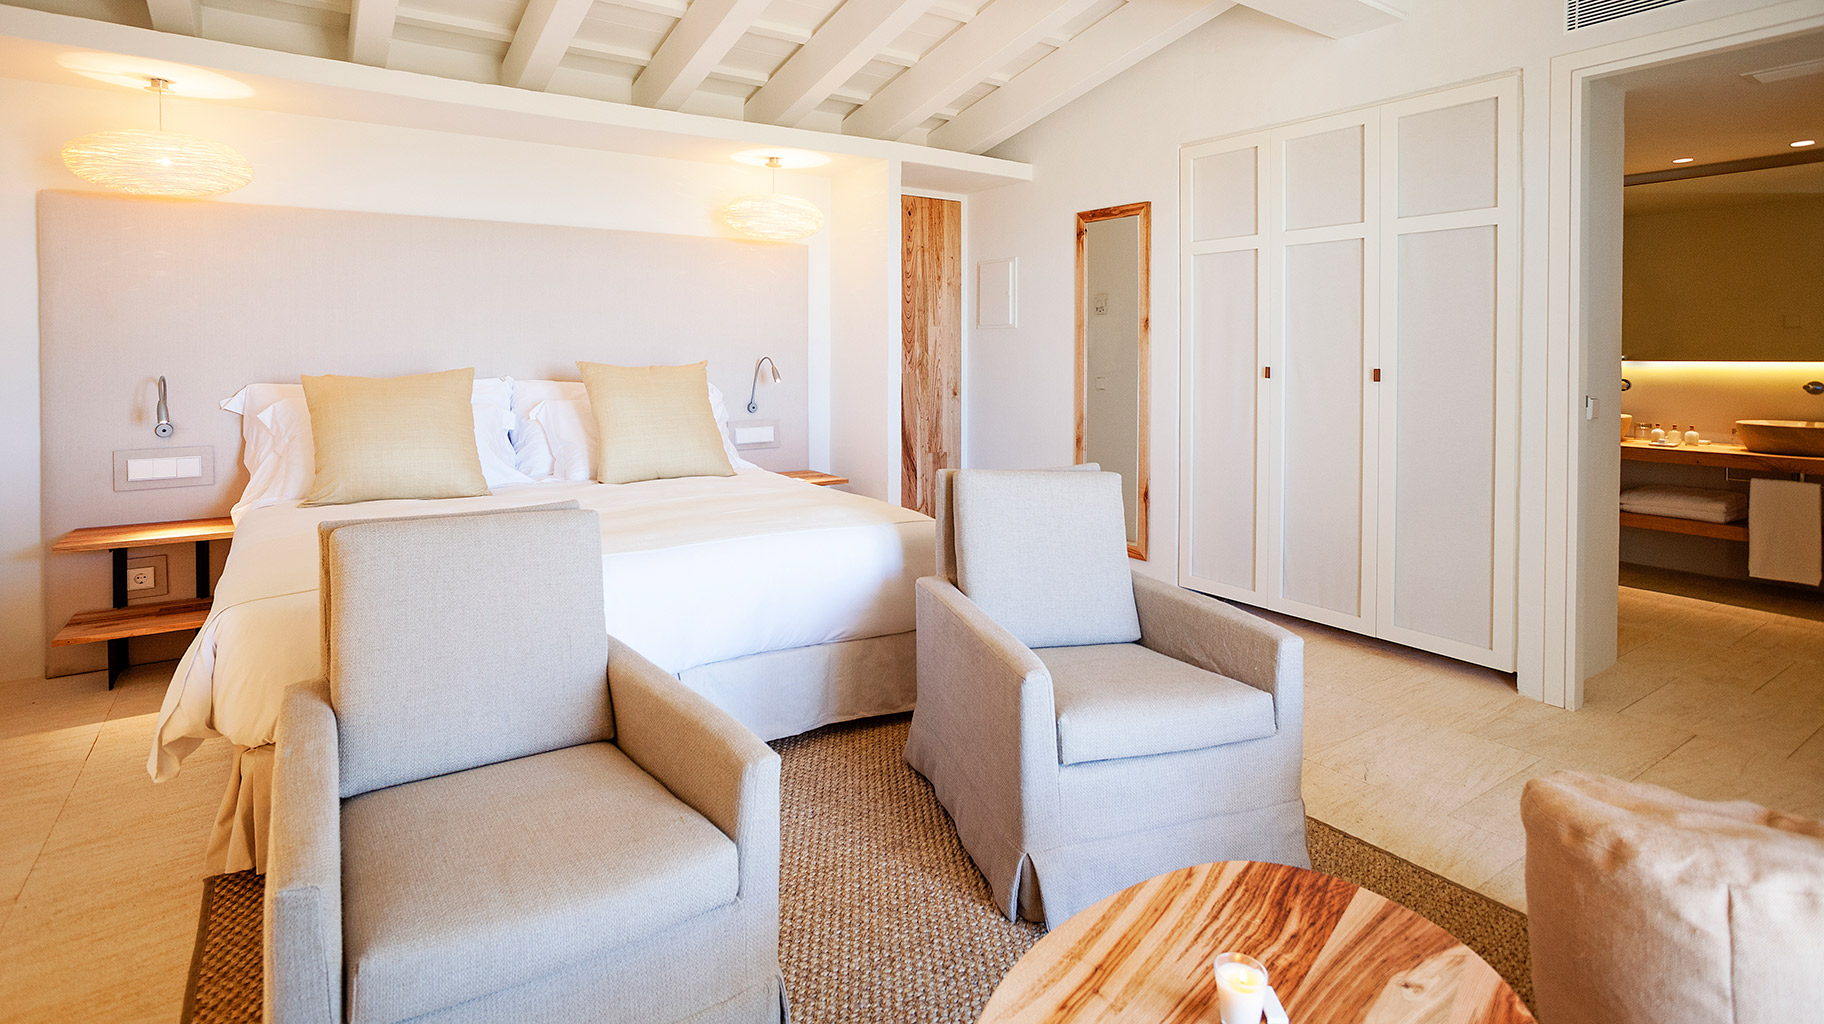 torralbenc-menorca-luxury-bedroom